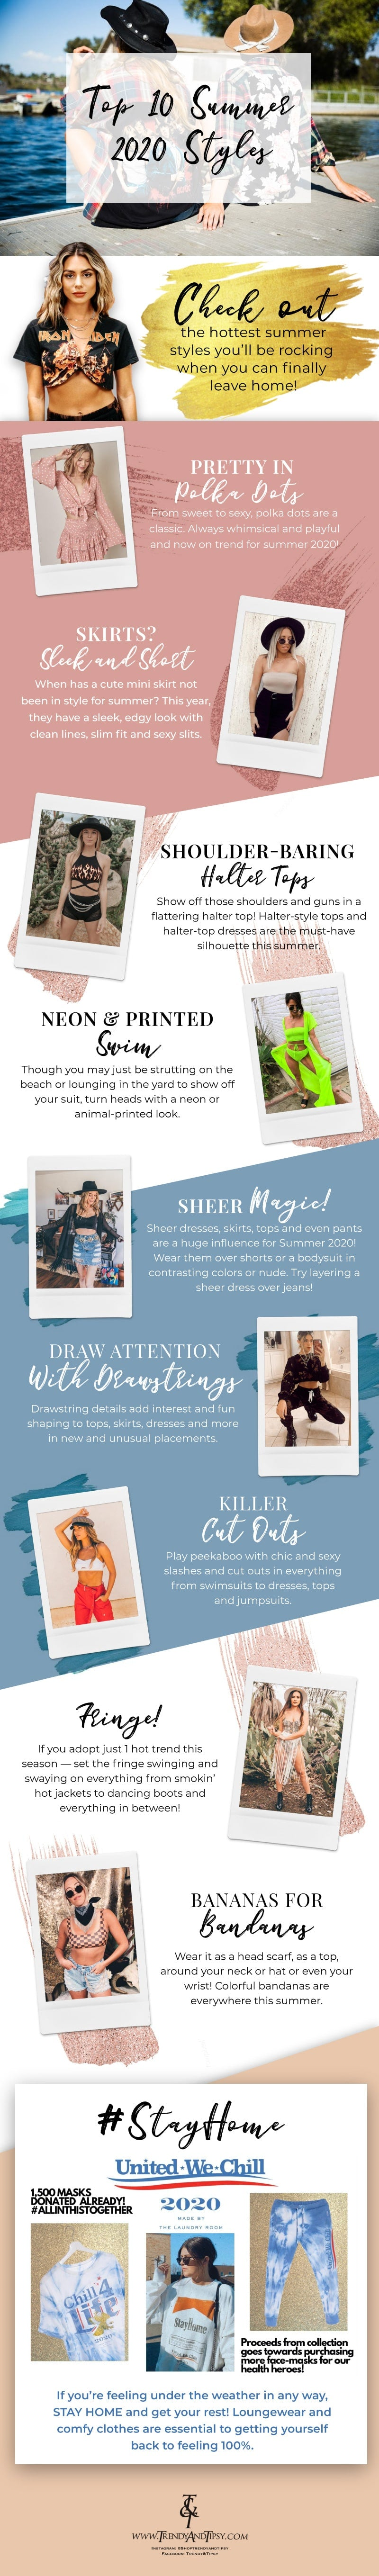 Top 10 Summer Styles for Women in 2020 infographic